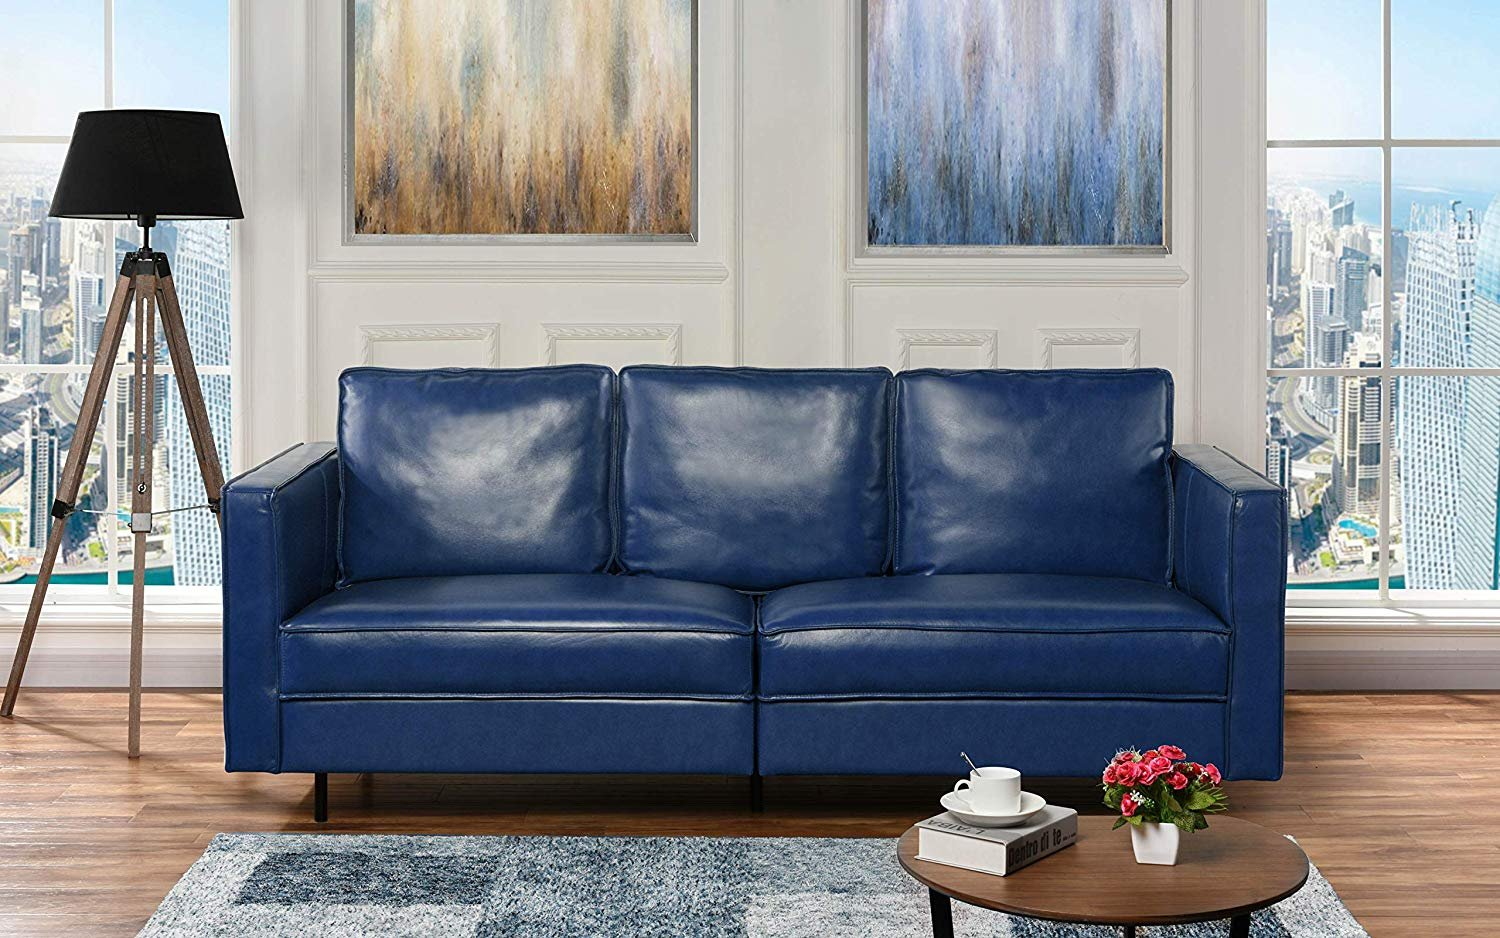 Etonnant Details About Mid Century Leather Match Living Room Sofa, Modern Hardwood  Frame Couch (Blue)